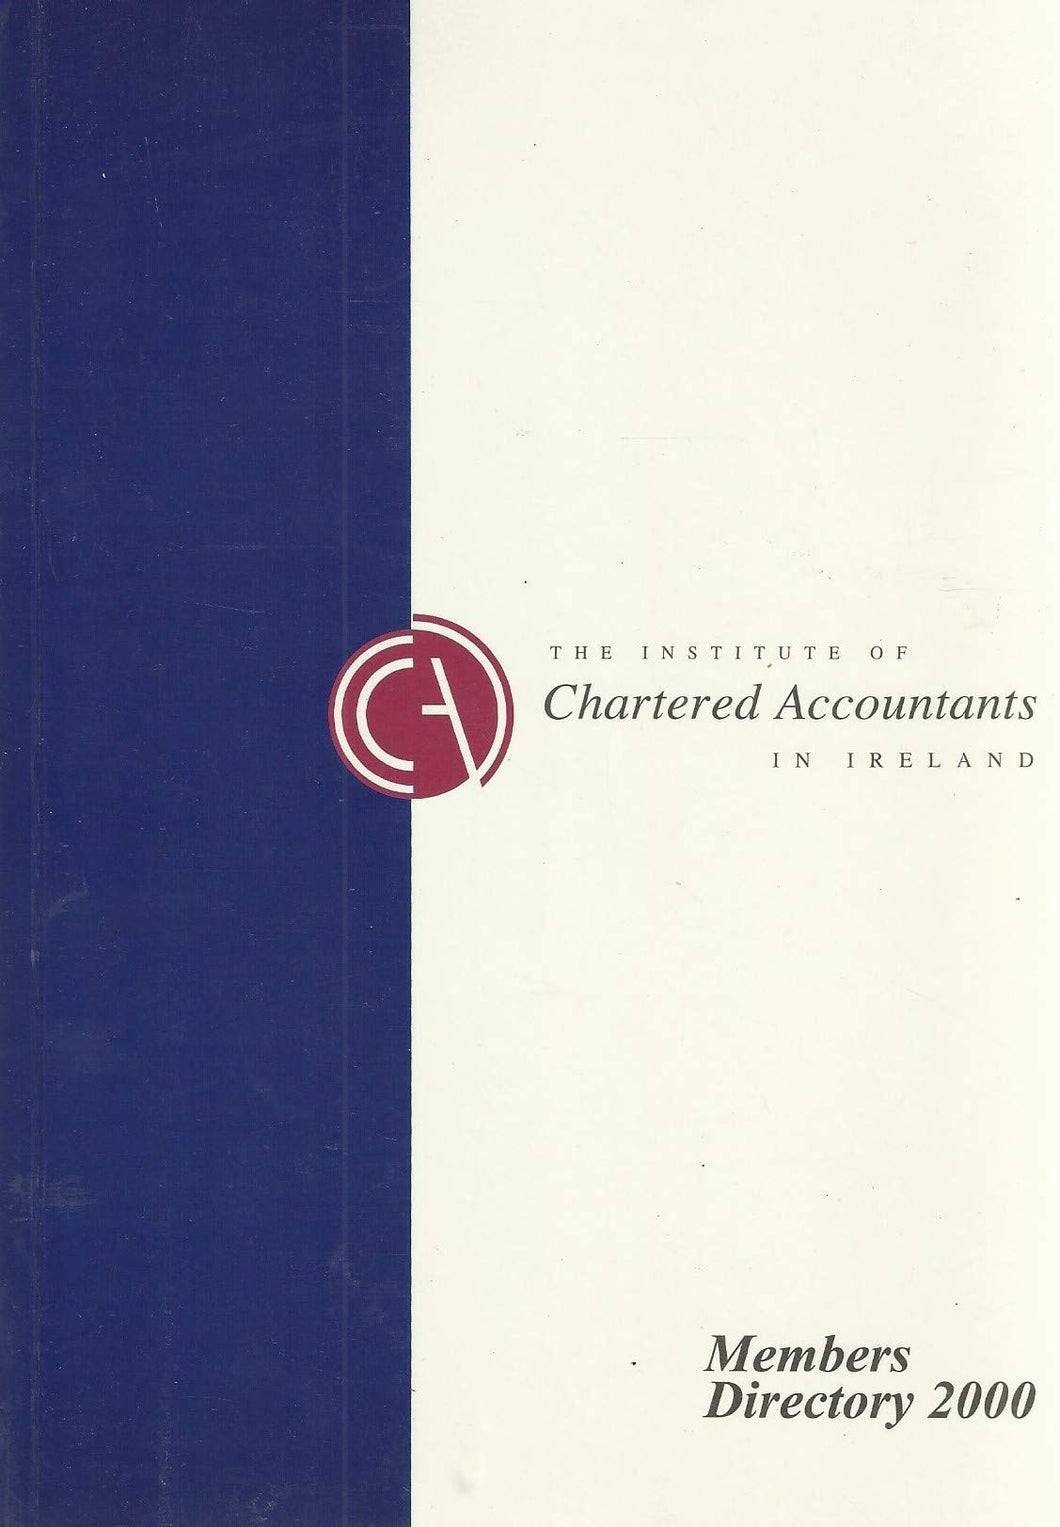 The Institute of Chartered Accountants in Ireland - Members Directory 2000 (Members' Directory)